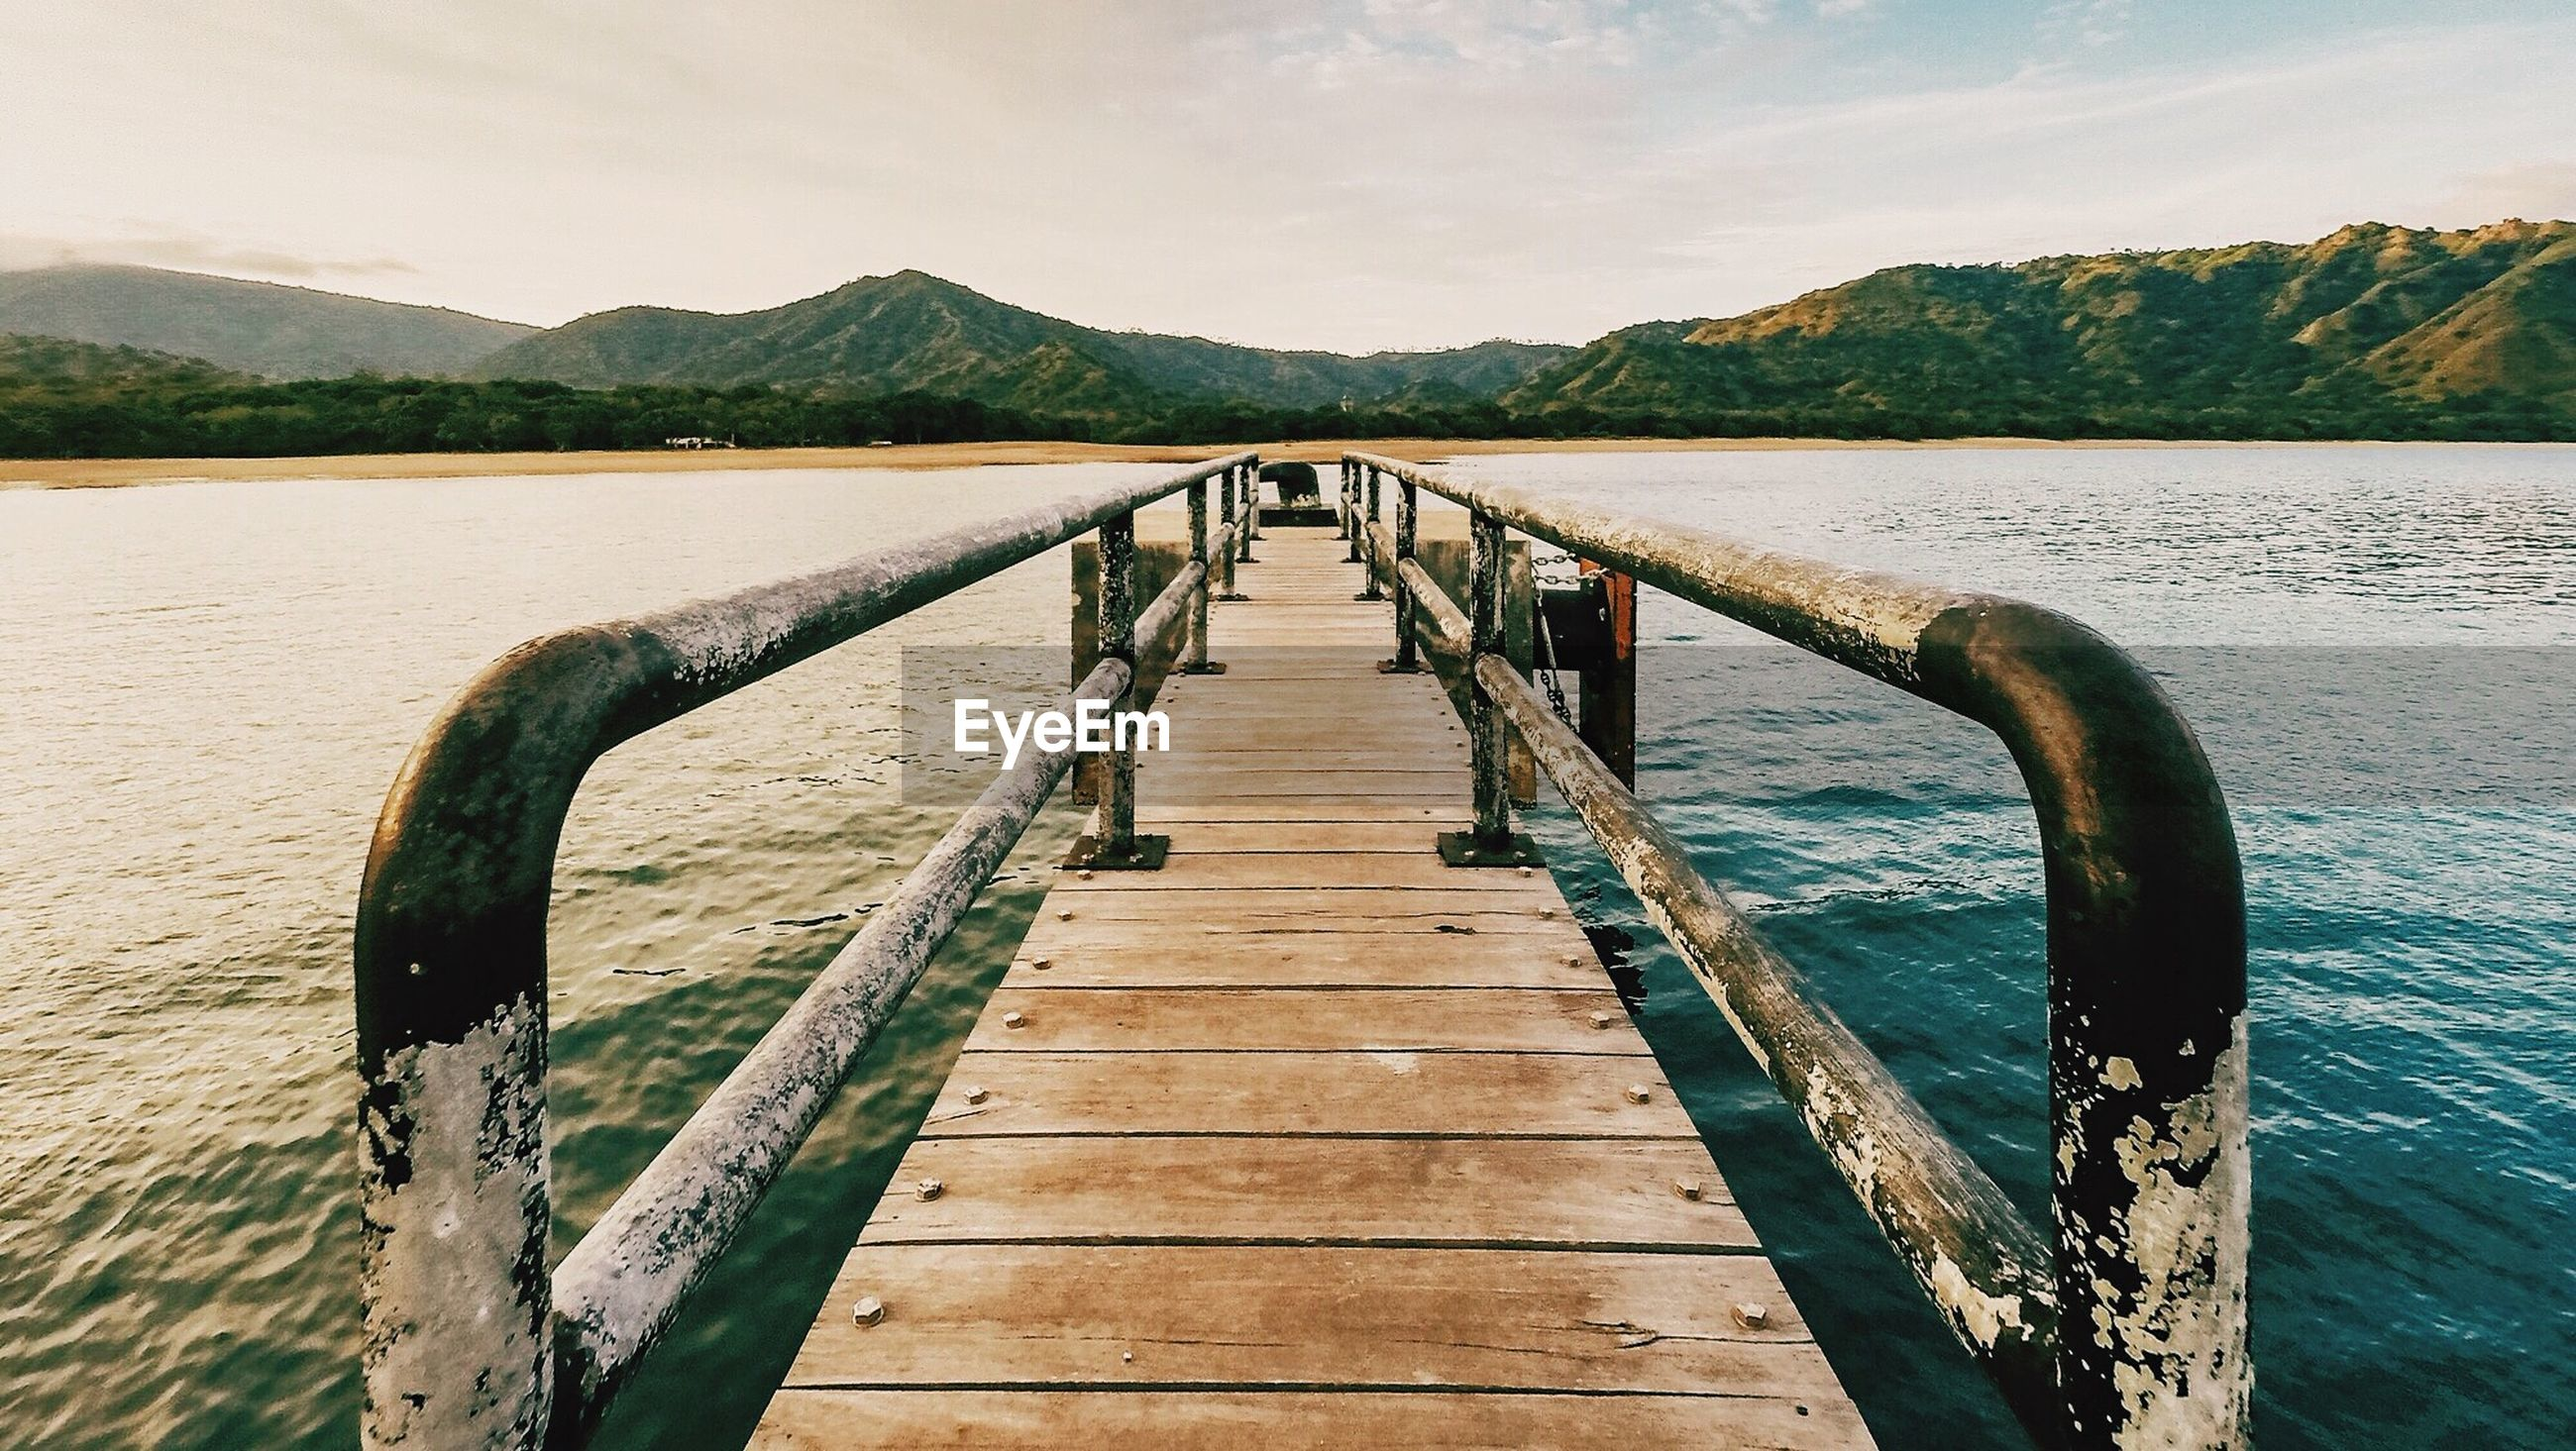 Pier over lake in front of mountains against sky